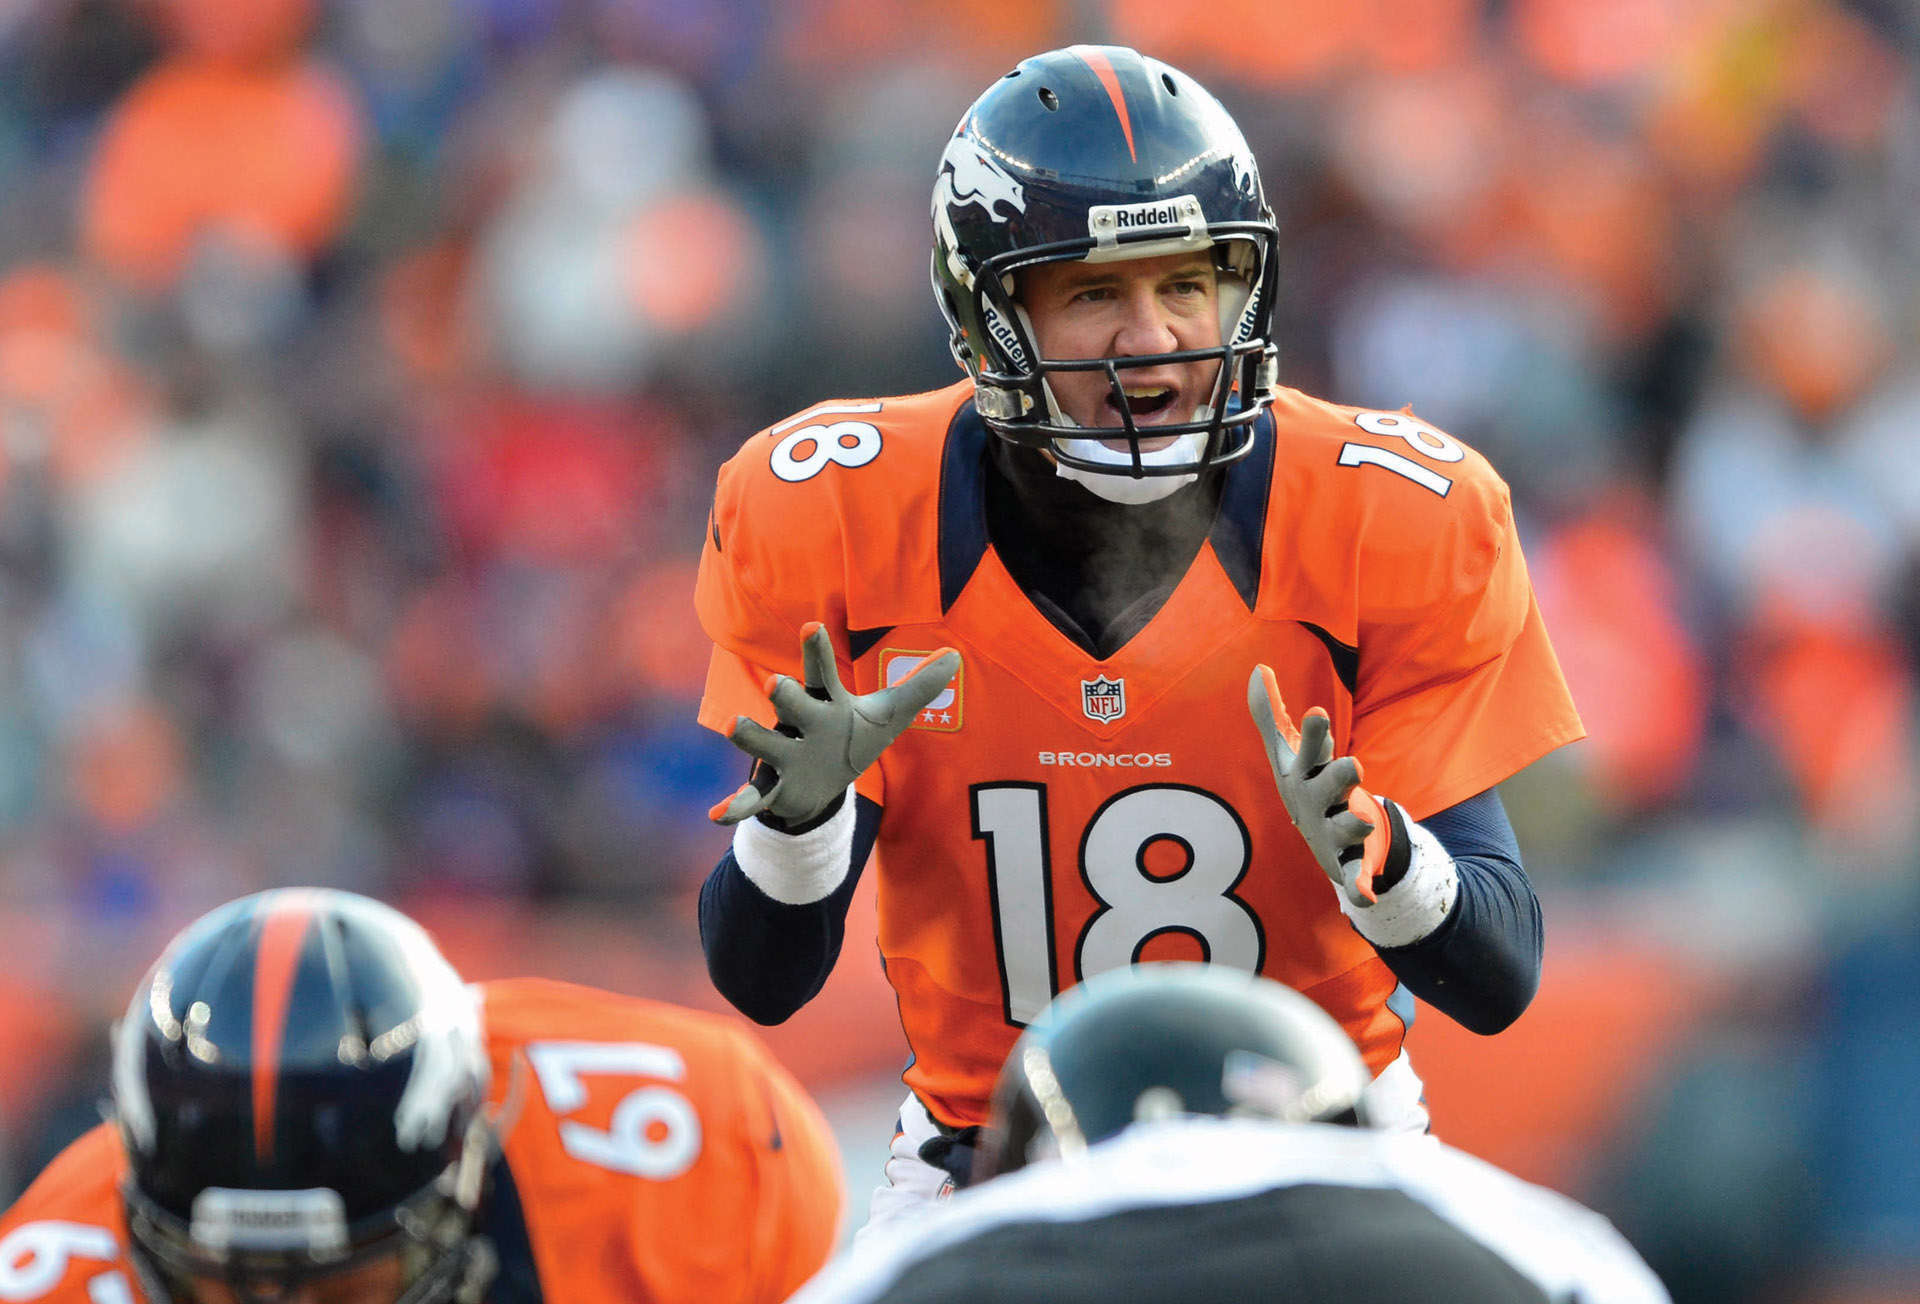 Peyton manning wallpapers high quality download free voltagebd Choice Image